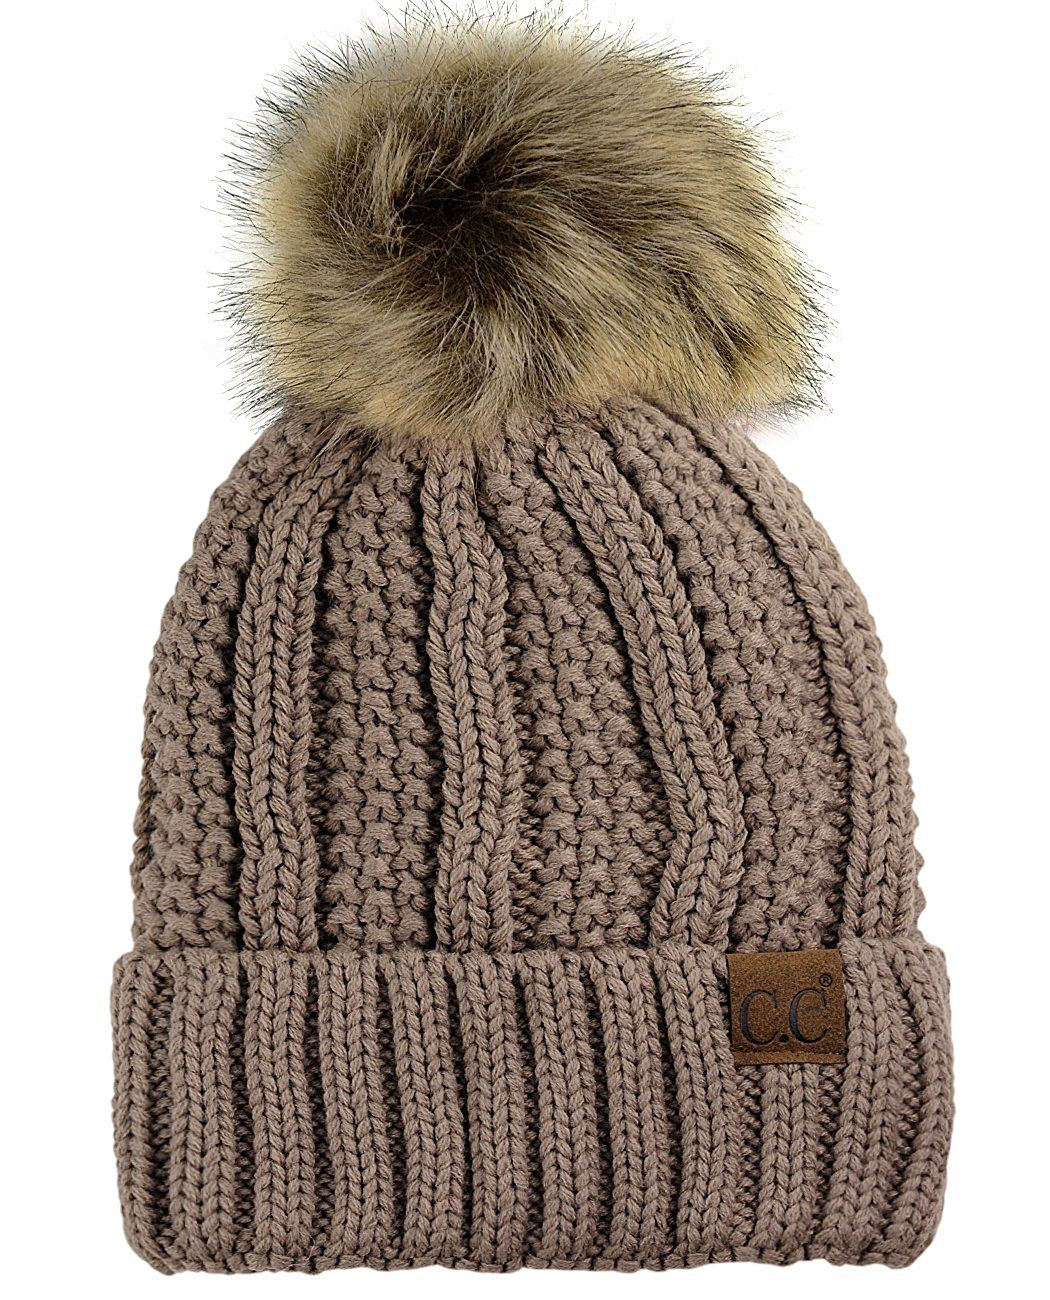 6a91546d58e C.C Thick Cable Knit Faux Fuzzy Fur Pom Fleece Lined Skull Cap Cuff Beanie